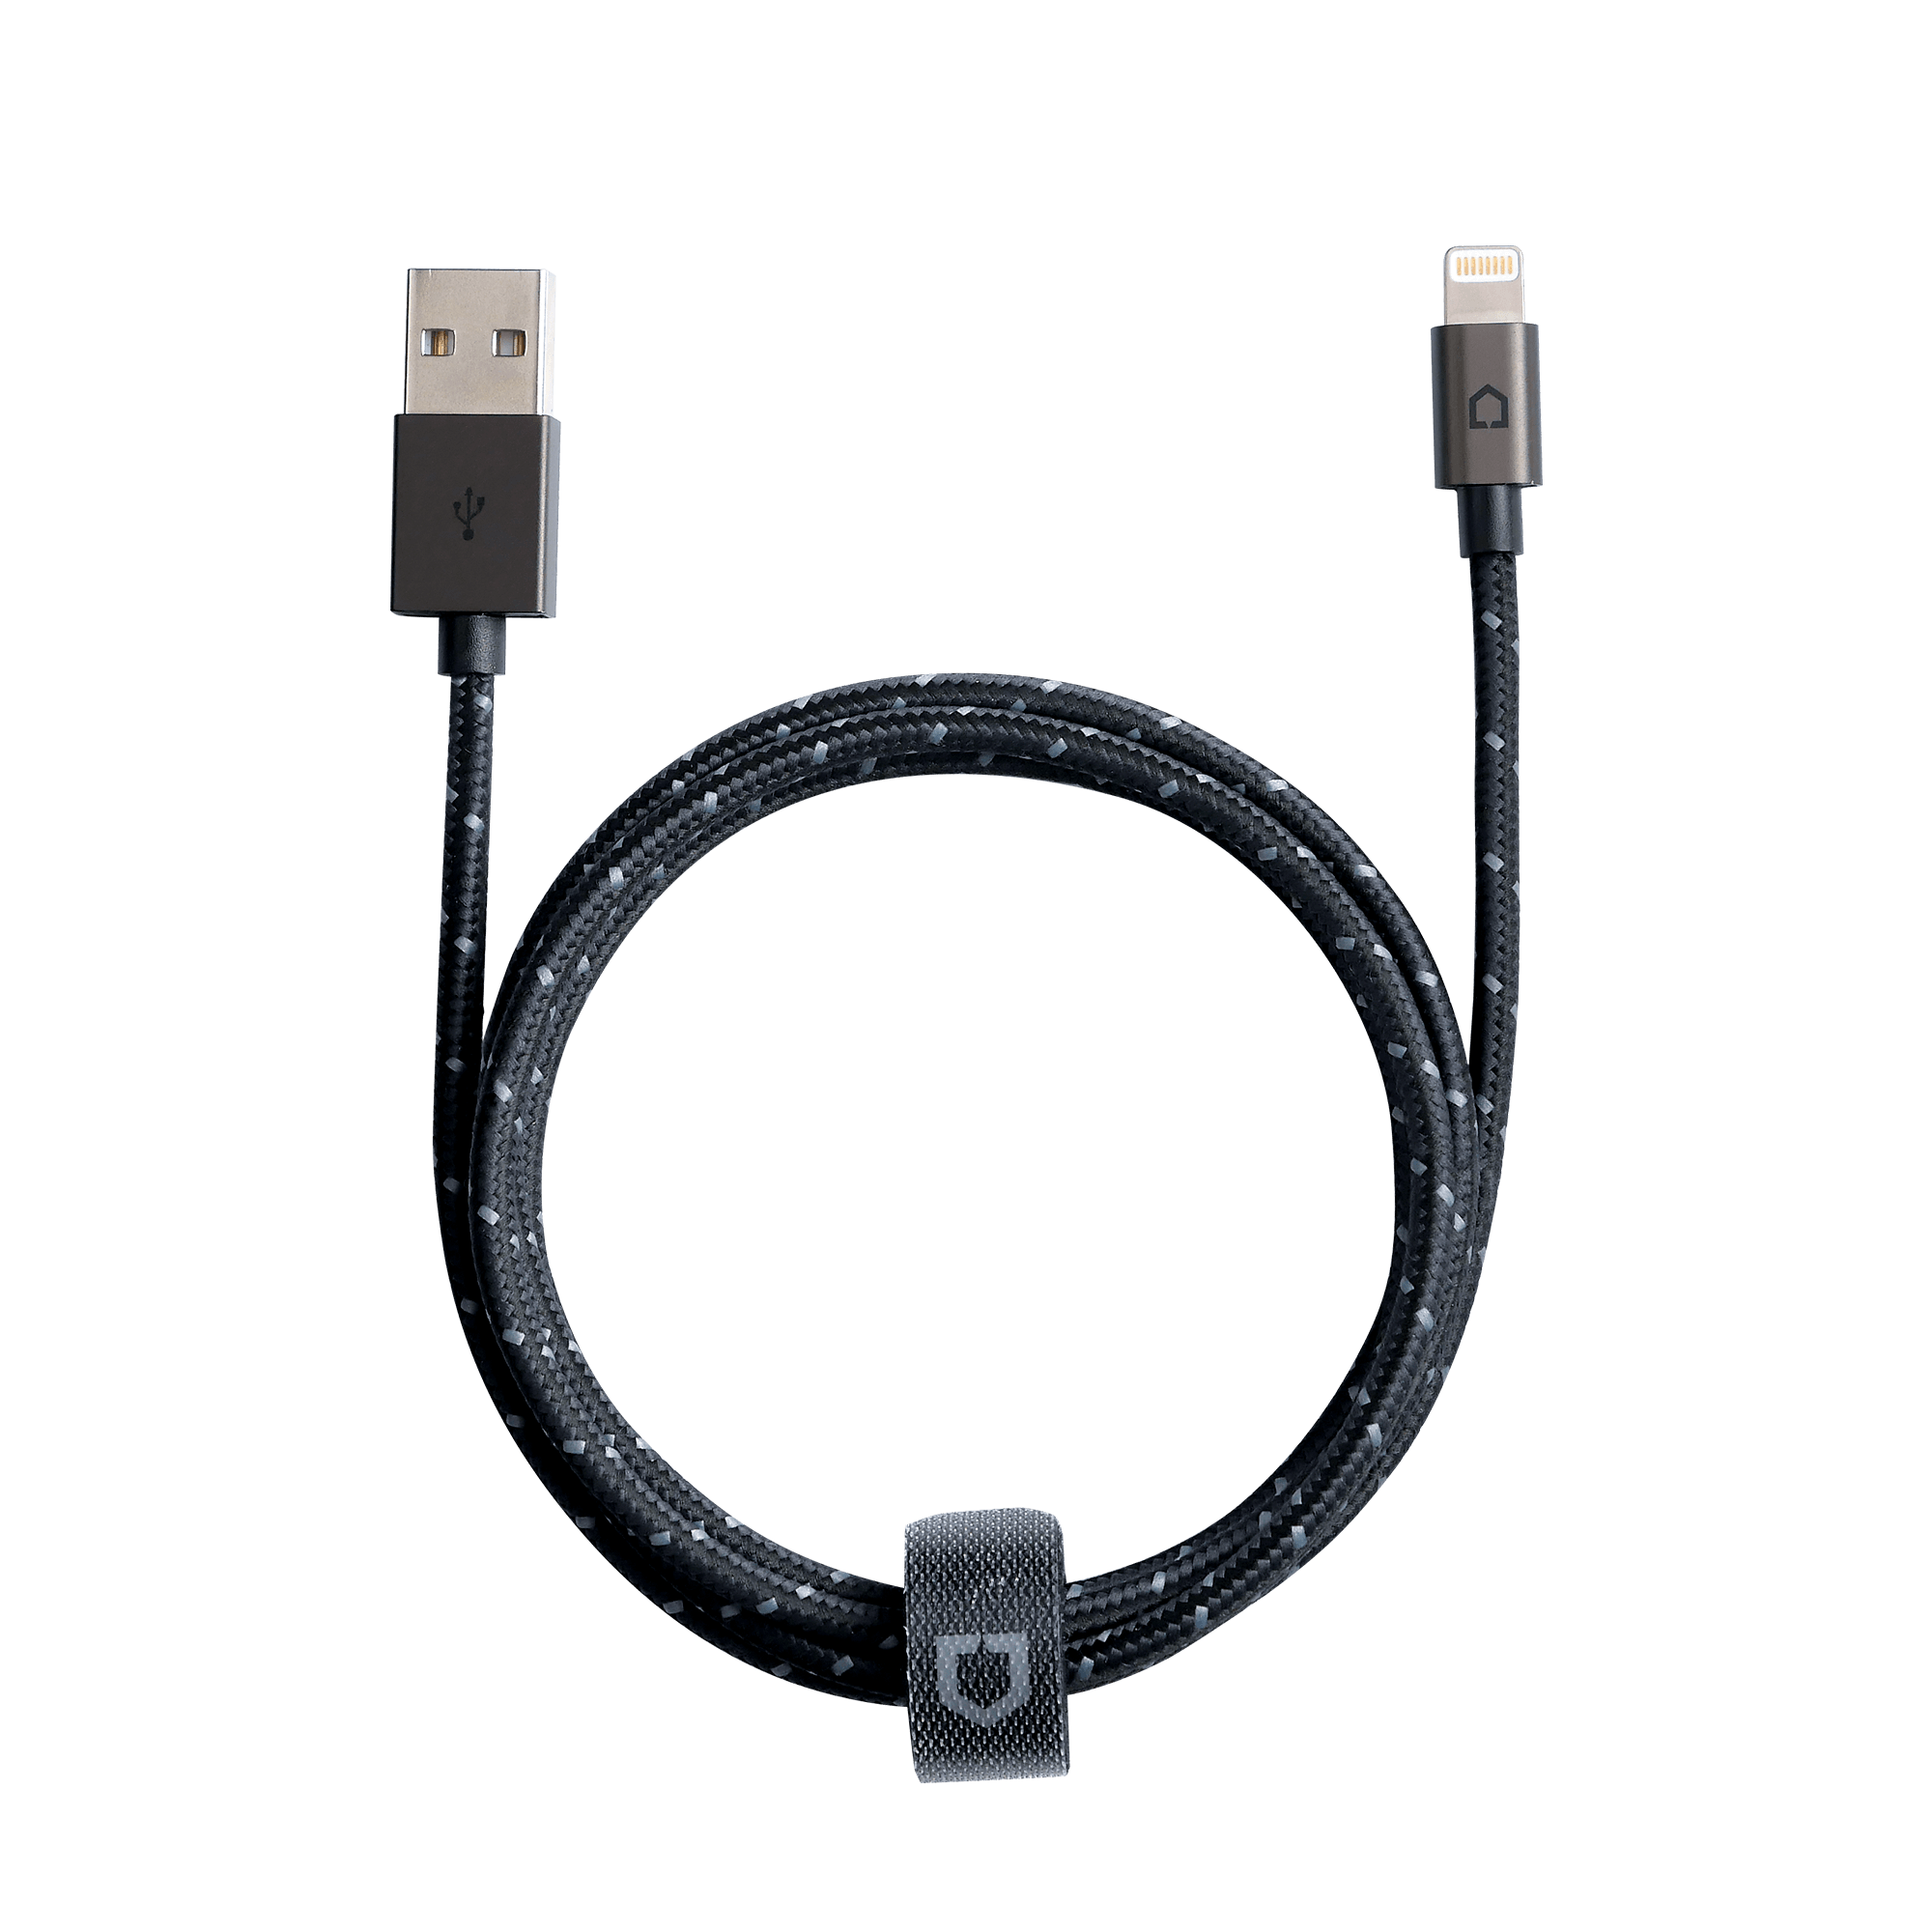 RhinoShield Apple Mfi Braided Lightning to USB Charging Cable